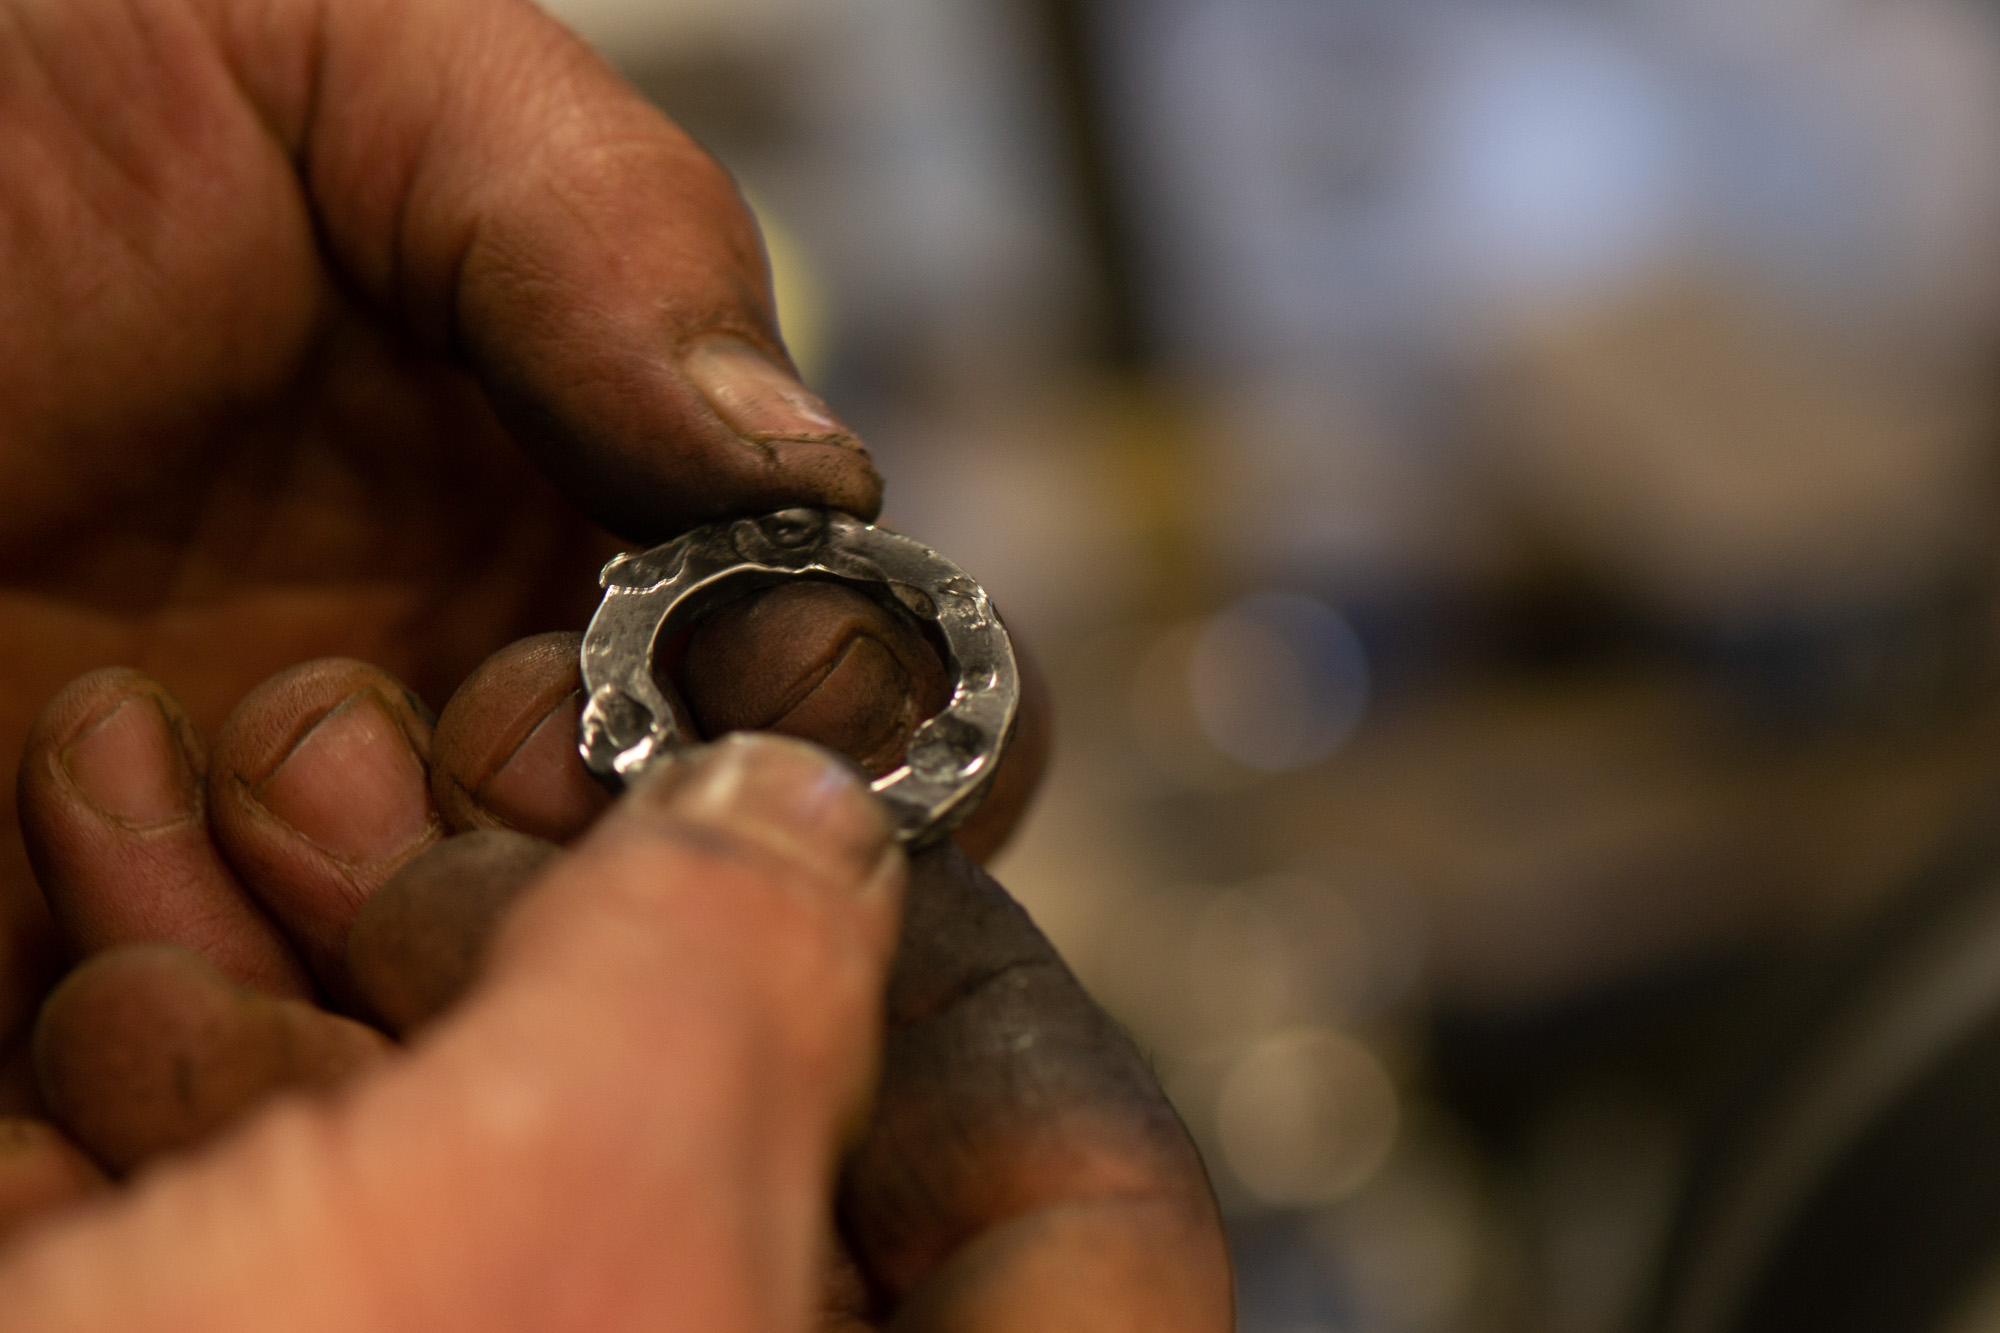 Each piece is individually hand forged, cleaned and polished by our expert blacksmiths.